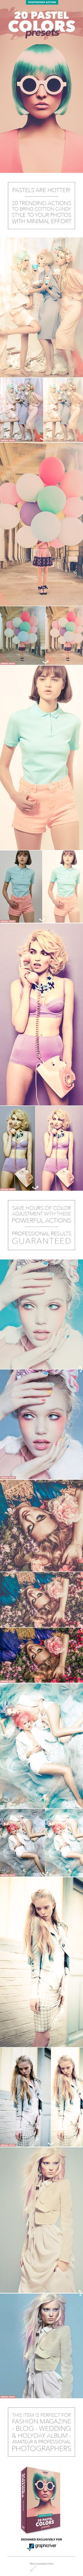 20 Pastel Colors Presets  Photoshop Action — Photoshop ATN #trending #smooth • Available here → https://graphicriver.net/item/20-pastel-colors-presets-photoshop-action/12017470?ref=pxcr